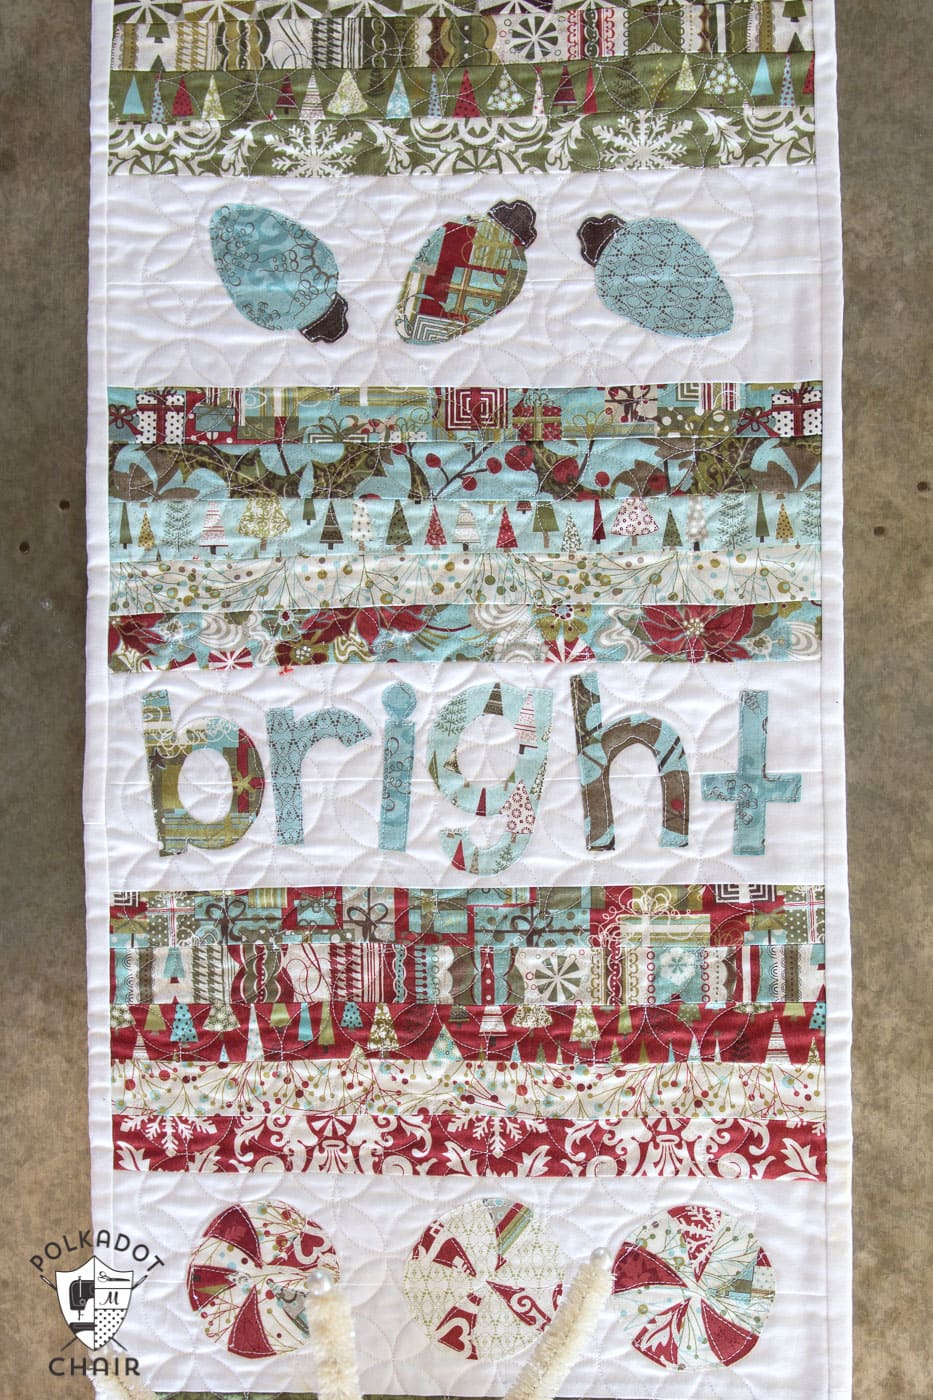 Merry & Cheer Quilted Christmas Table Runner Pattern - The Polka Dot ...